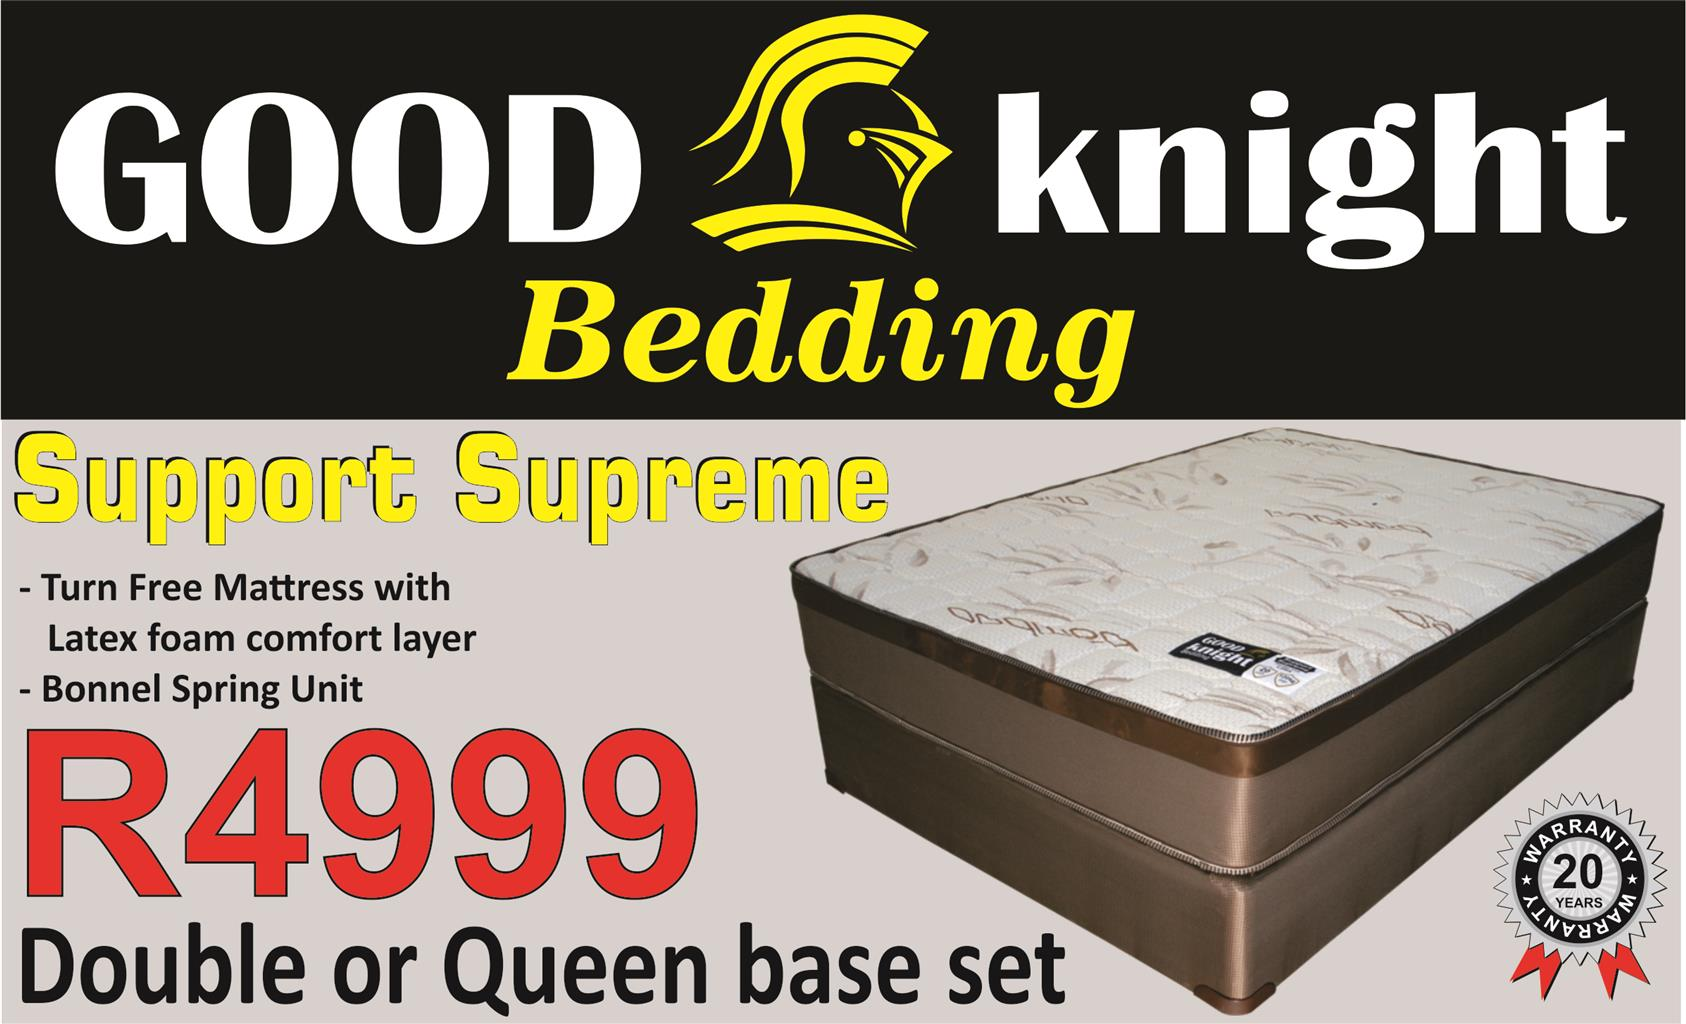 Good Knight Bedding, factory direct beds